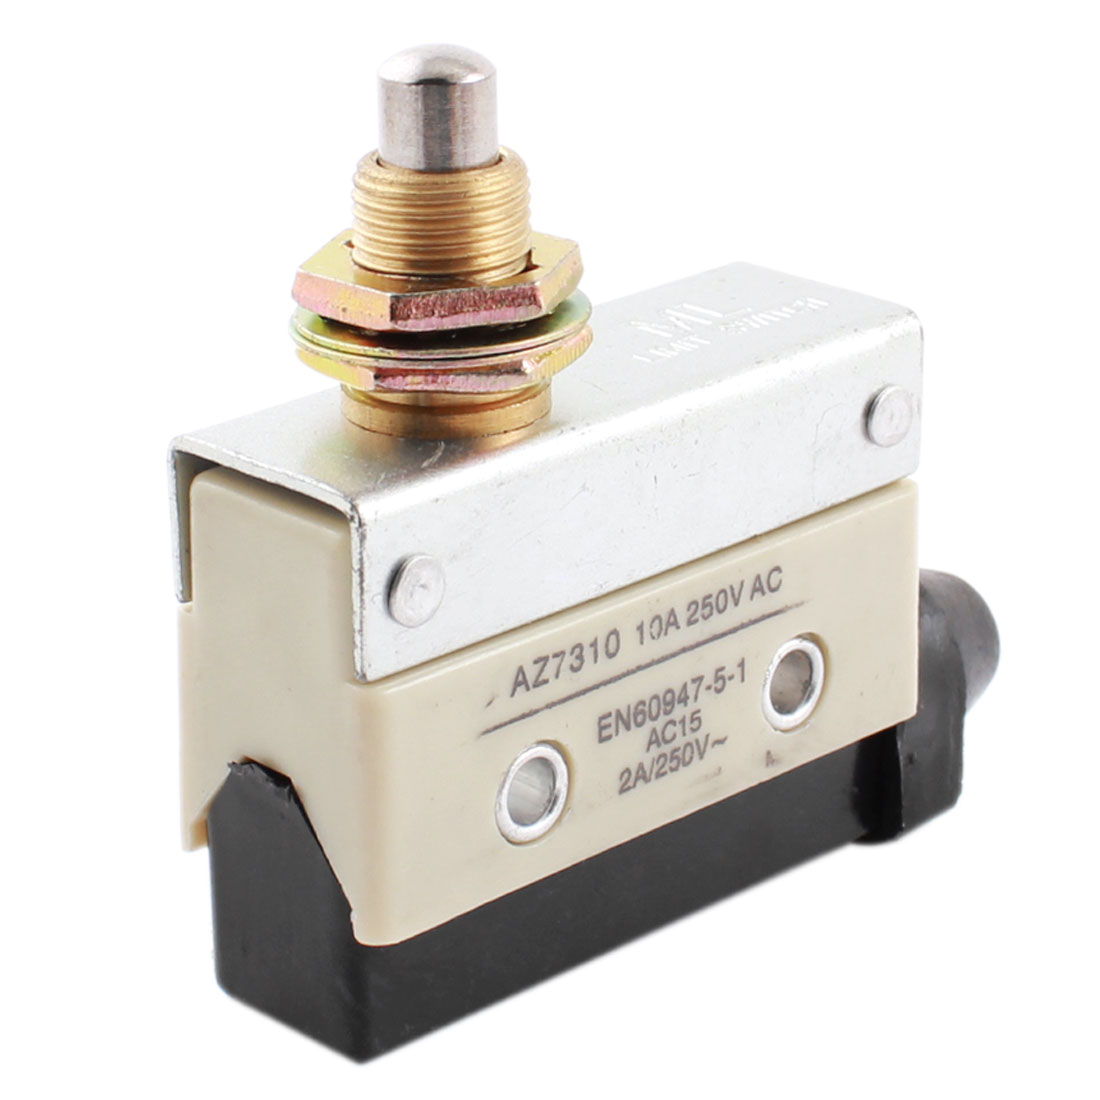 AZ-7310 AC 250V 10A 12mm Dia Thread Panel Mount Plunger Enclosed SPDT 1NO 1NC Momentary Control Micro Limit Switch